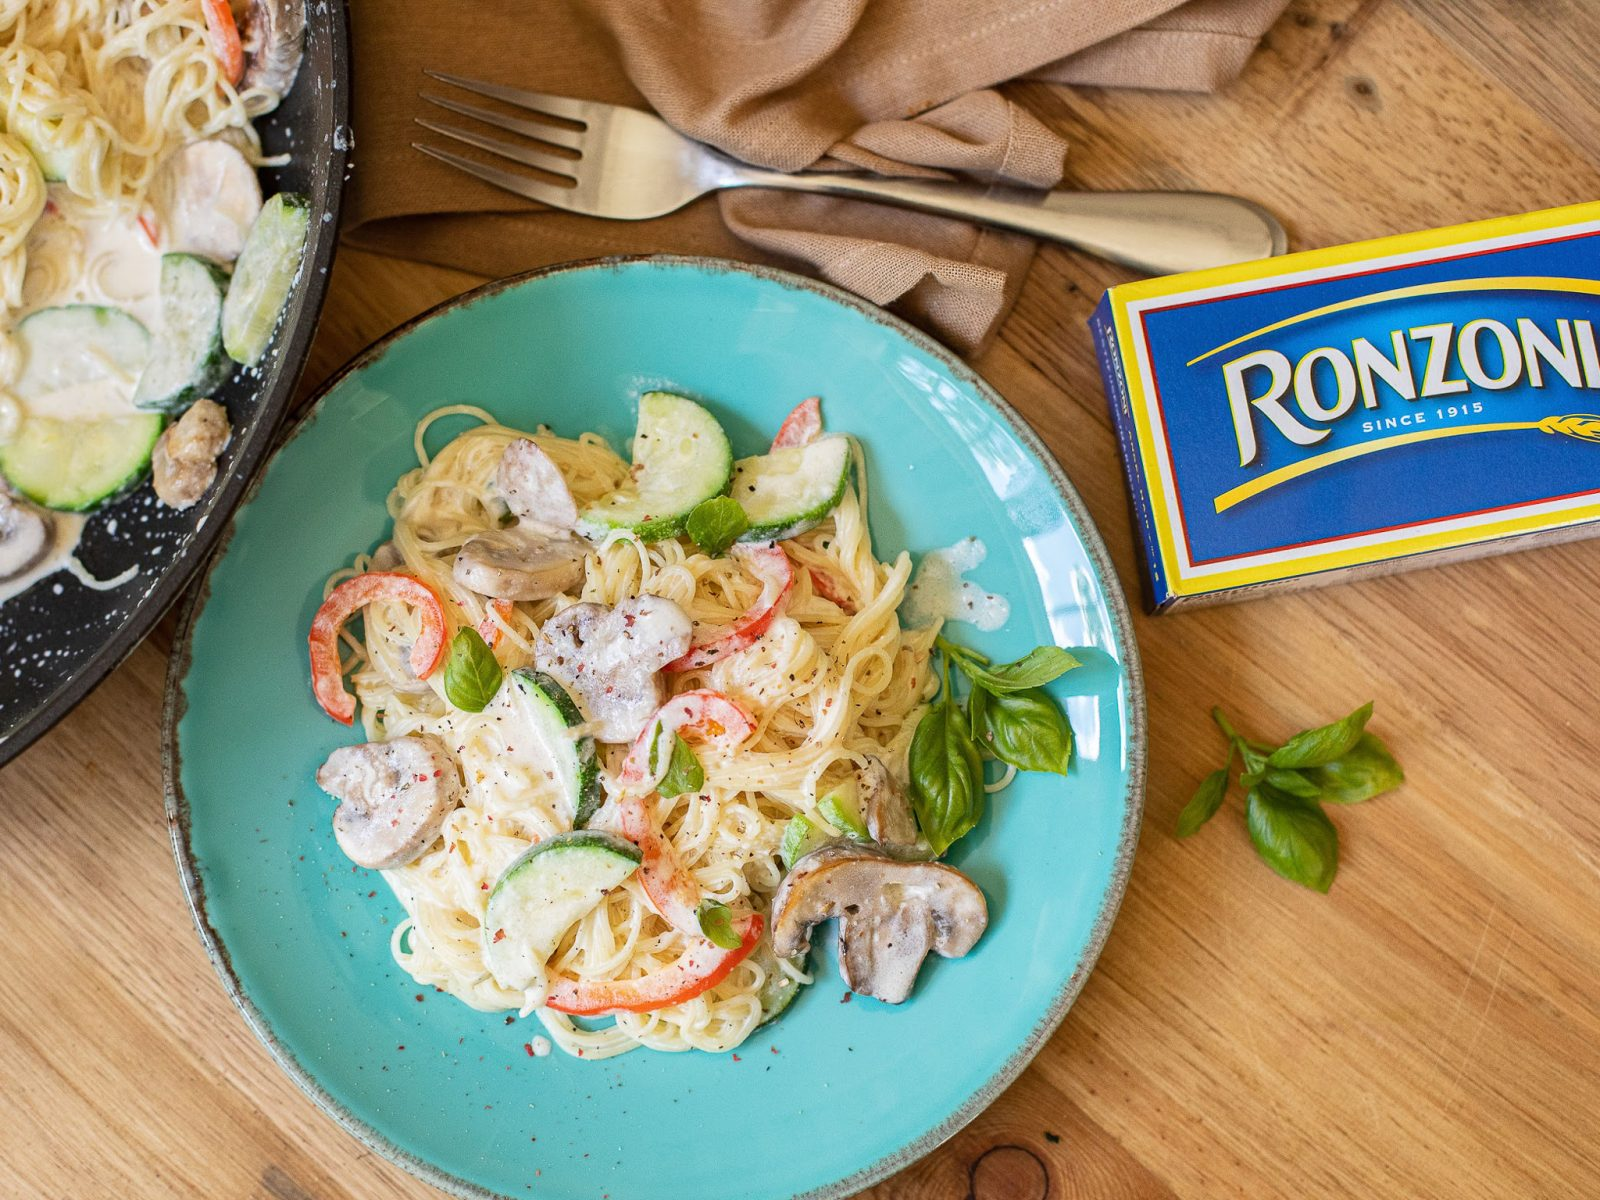 Creamy Angel Hair Primavera Is The Perfect Recipe For The Ronzoni BOGO Sale on I Heart Publix